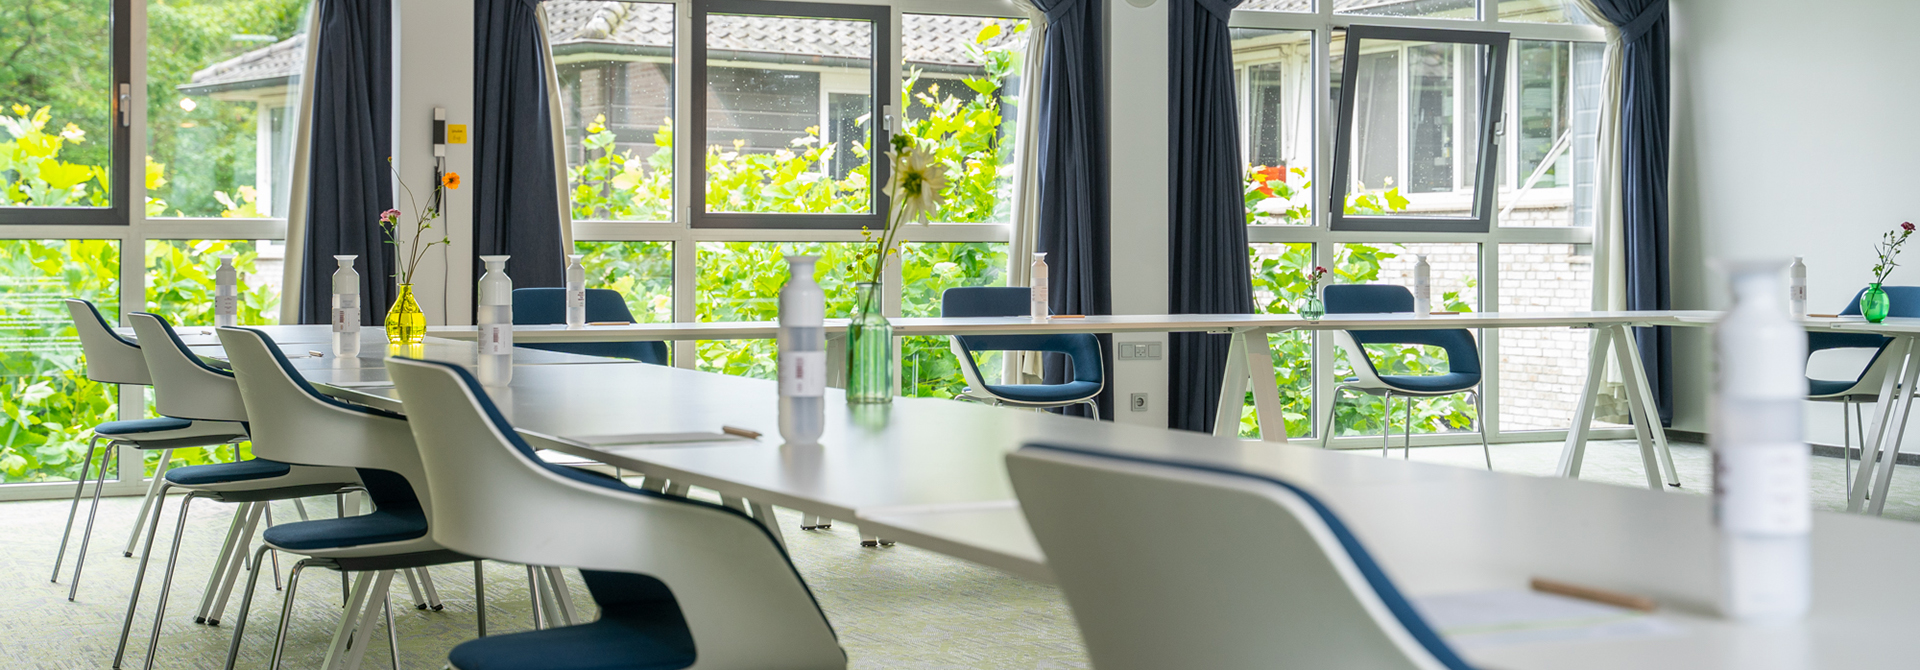 vacature banqueting manager